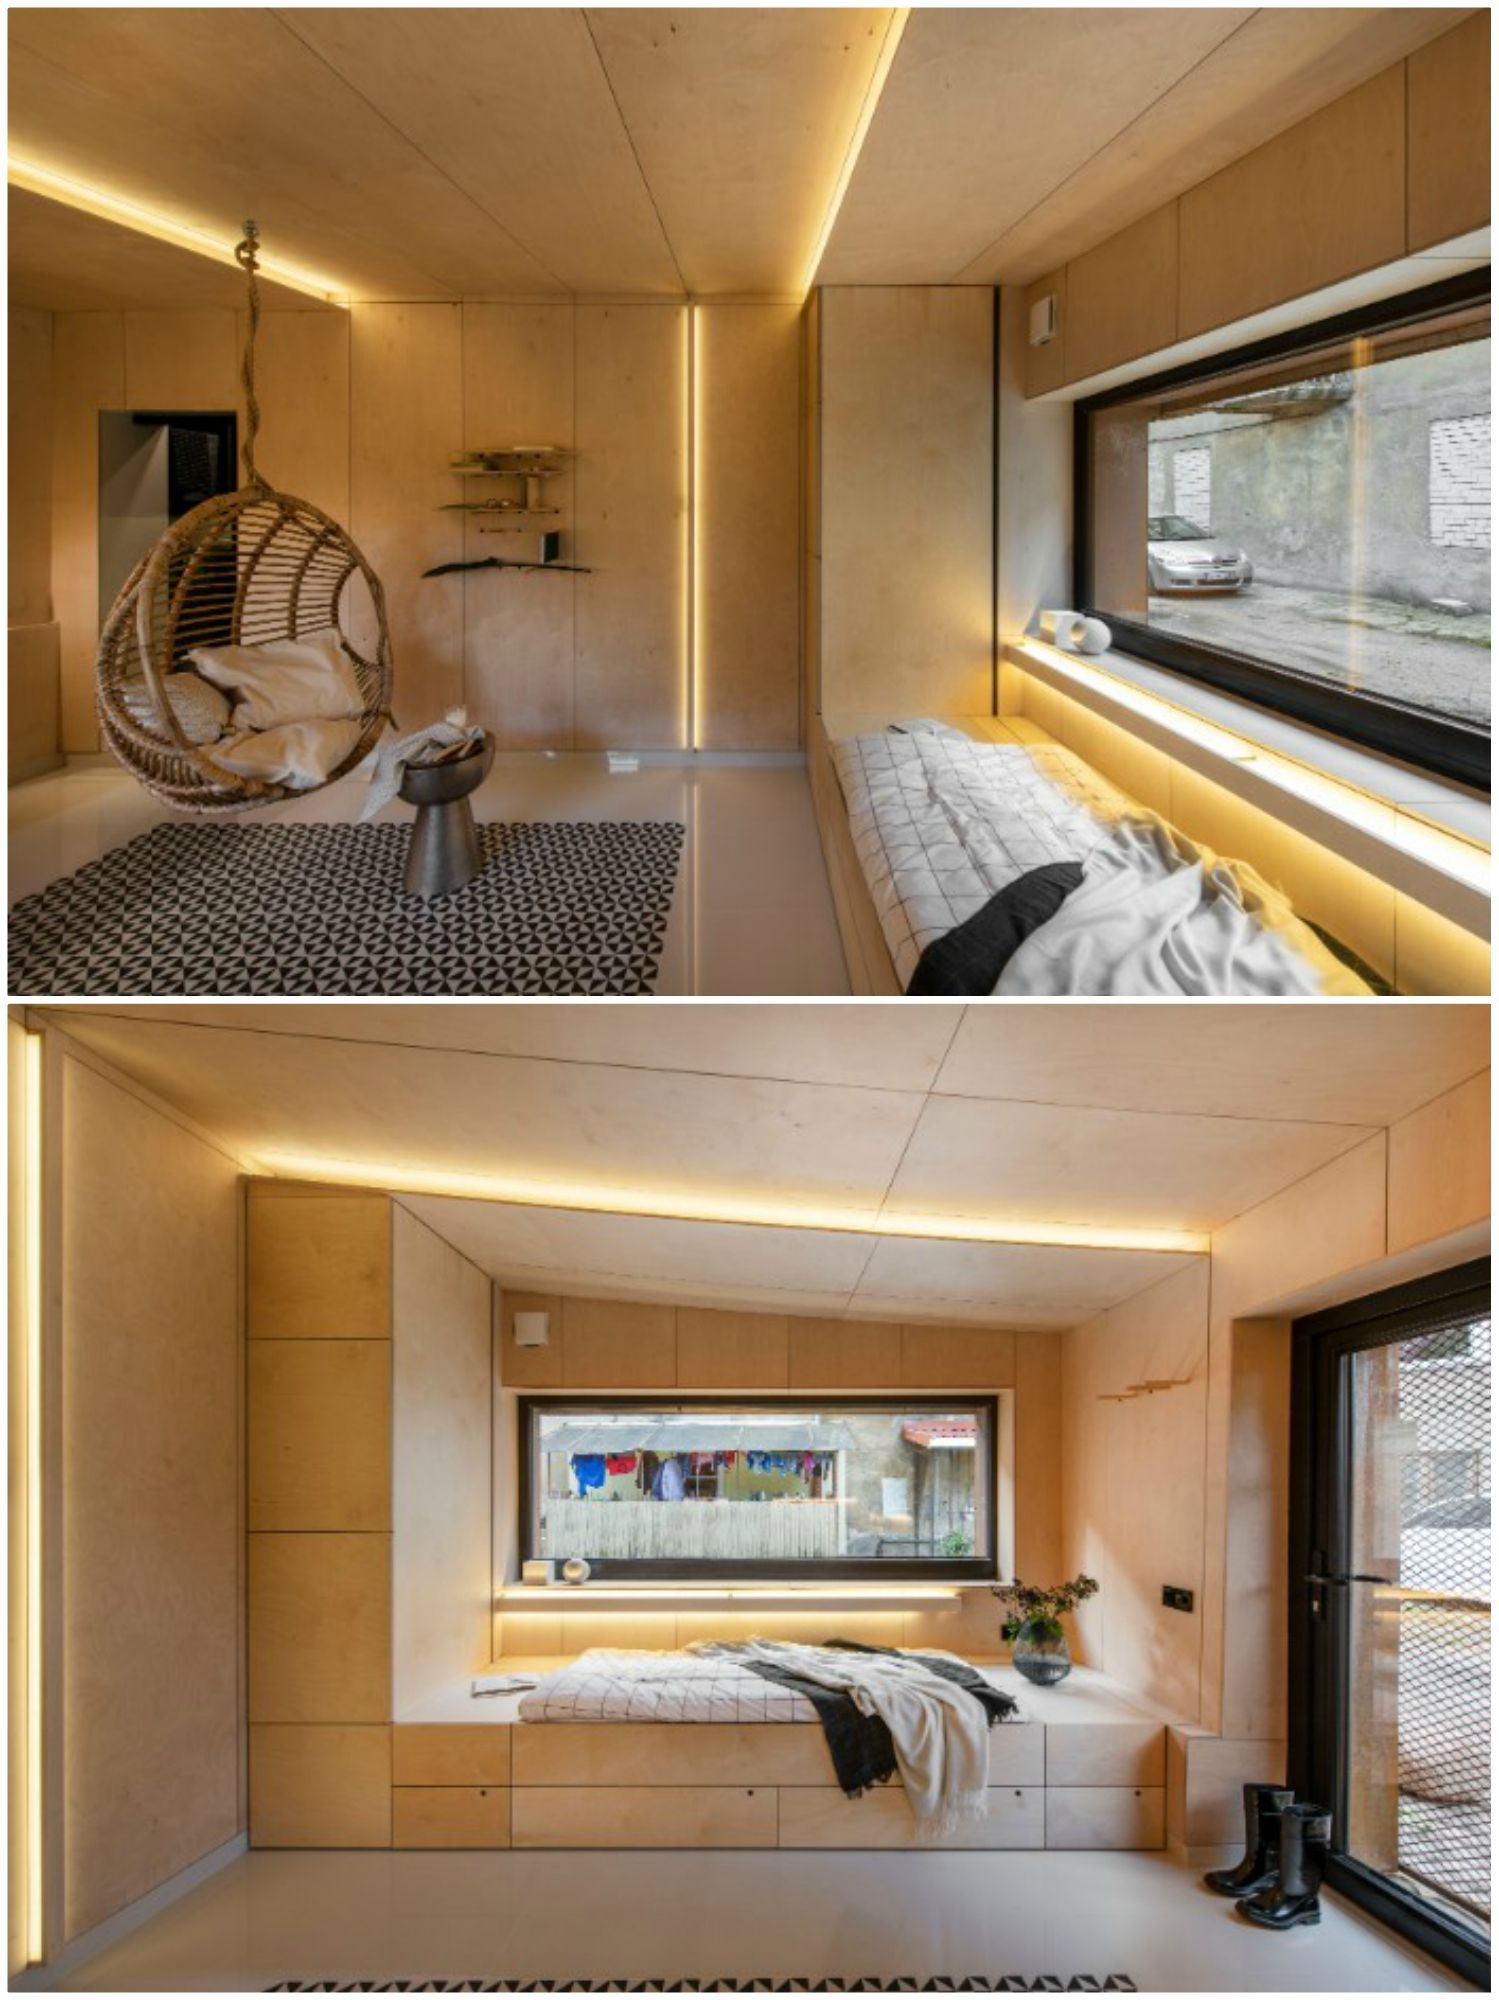 Dilapidated Garage Was Turned Into A Stunning 21 M2 Micro Home Living In A Shoebox Home Micro House Dilapidated